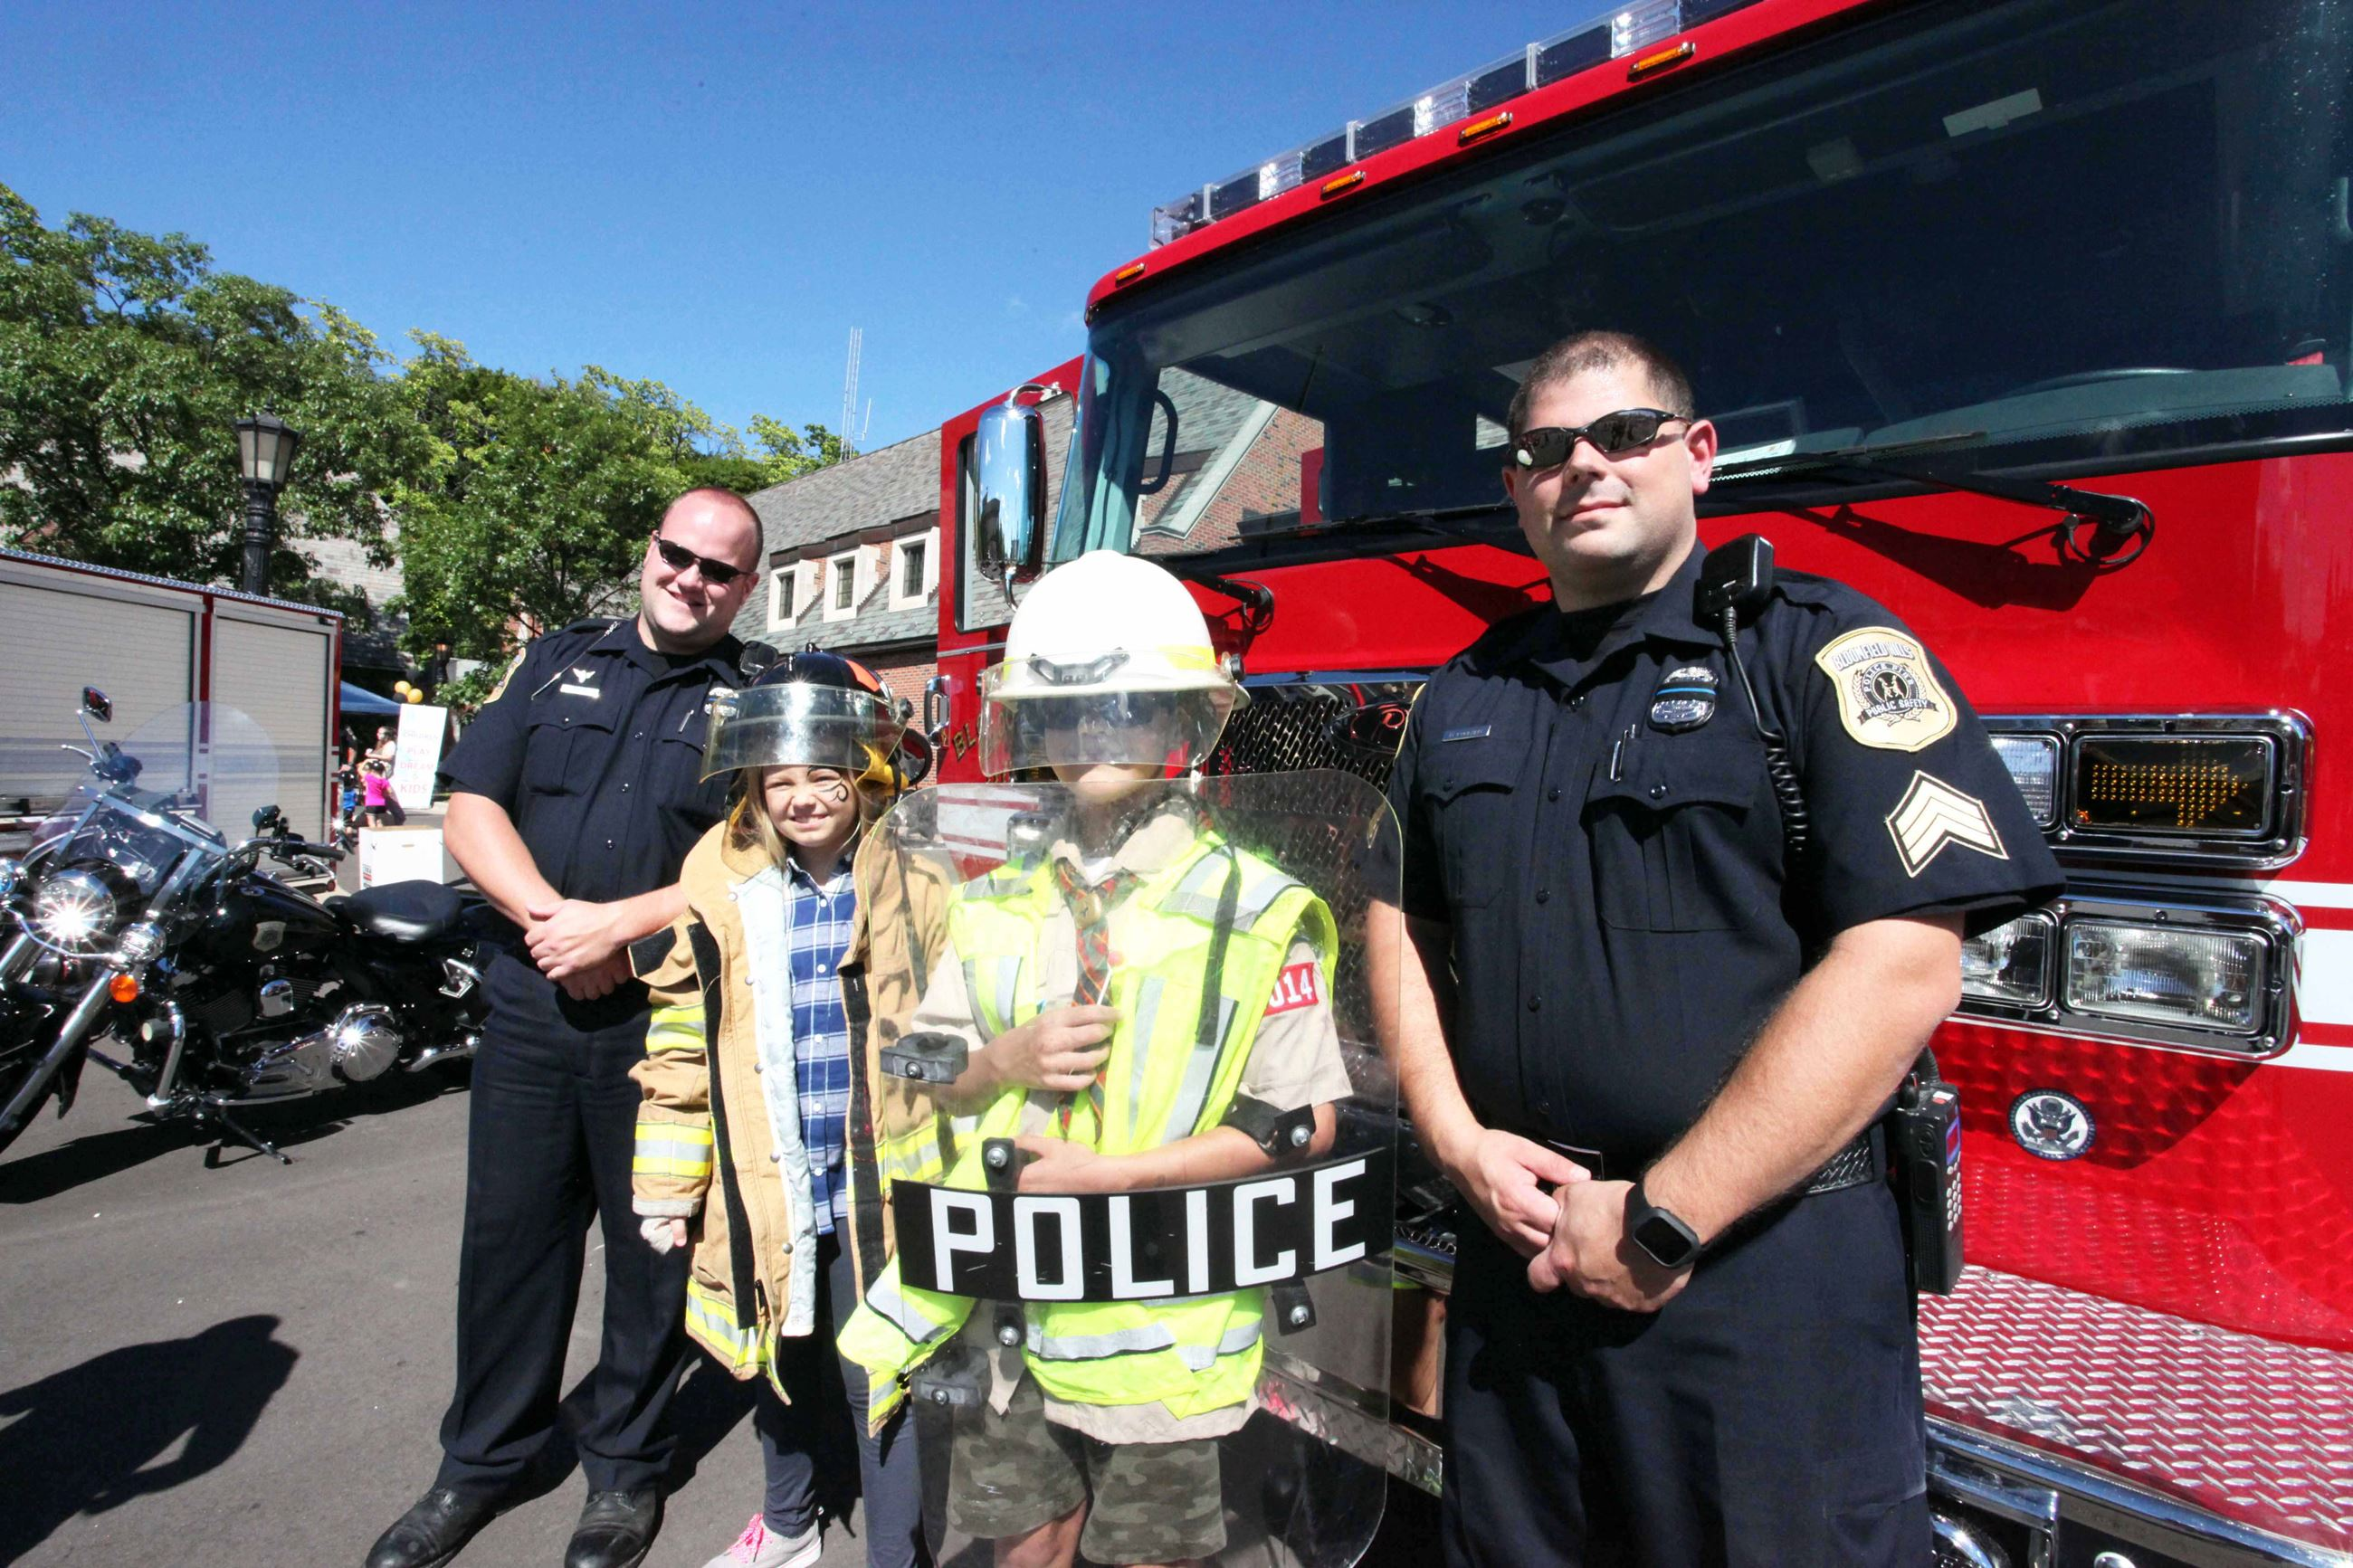 Kids Posing in Police and Fire Gear with Officers